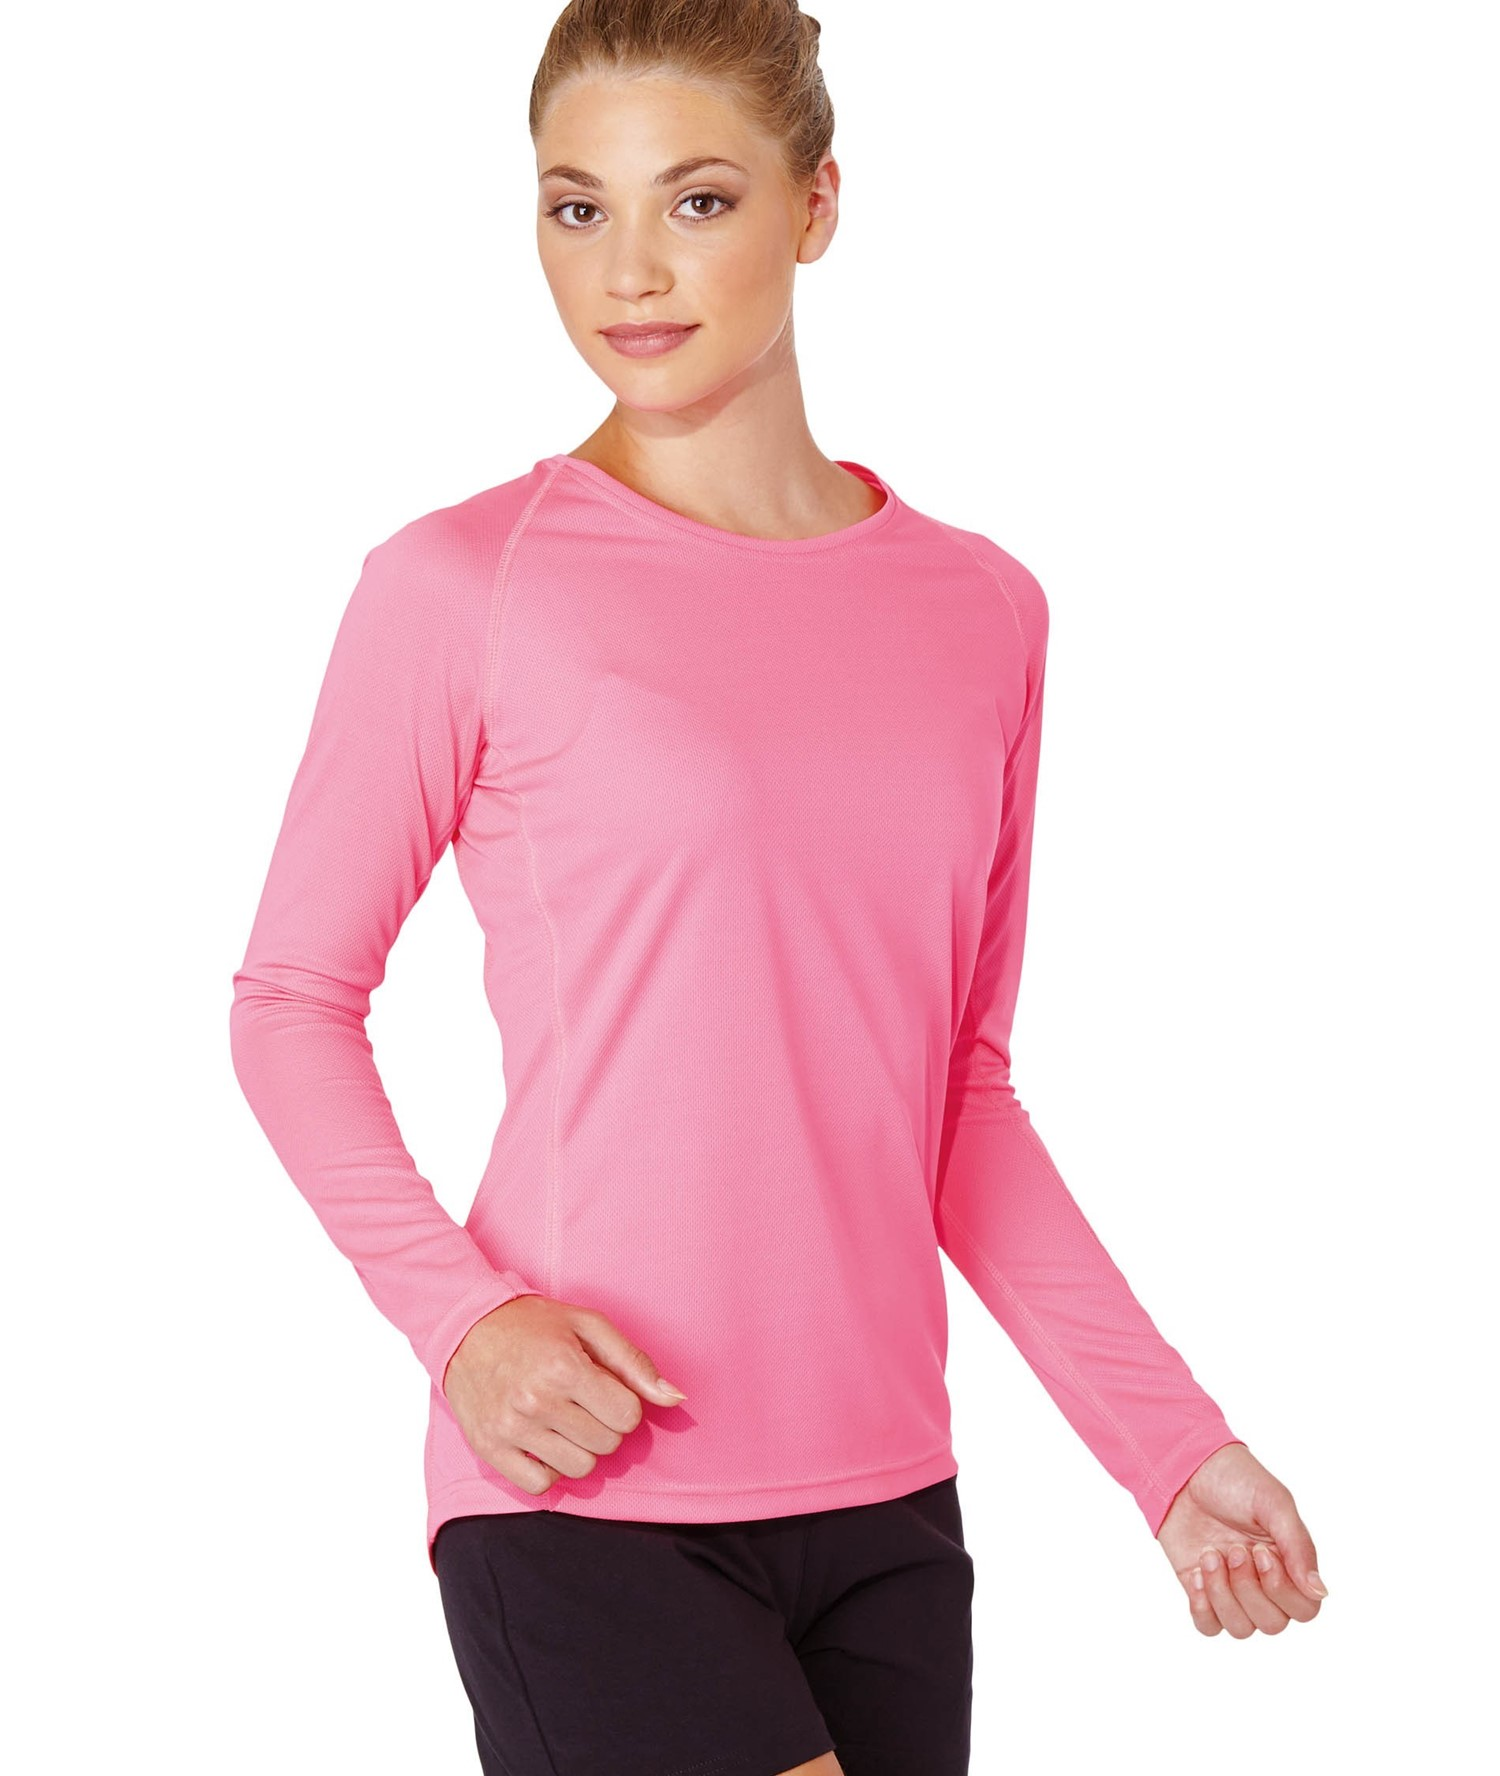 PROACT LADIES LONG SLEEVE SPORTS T-SHIRT